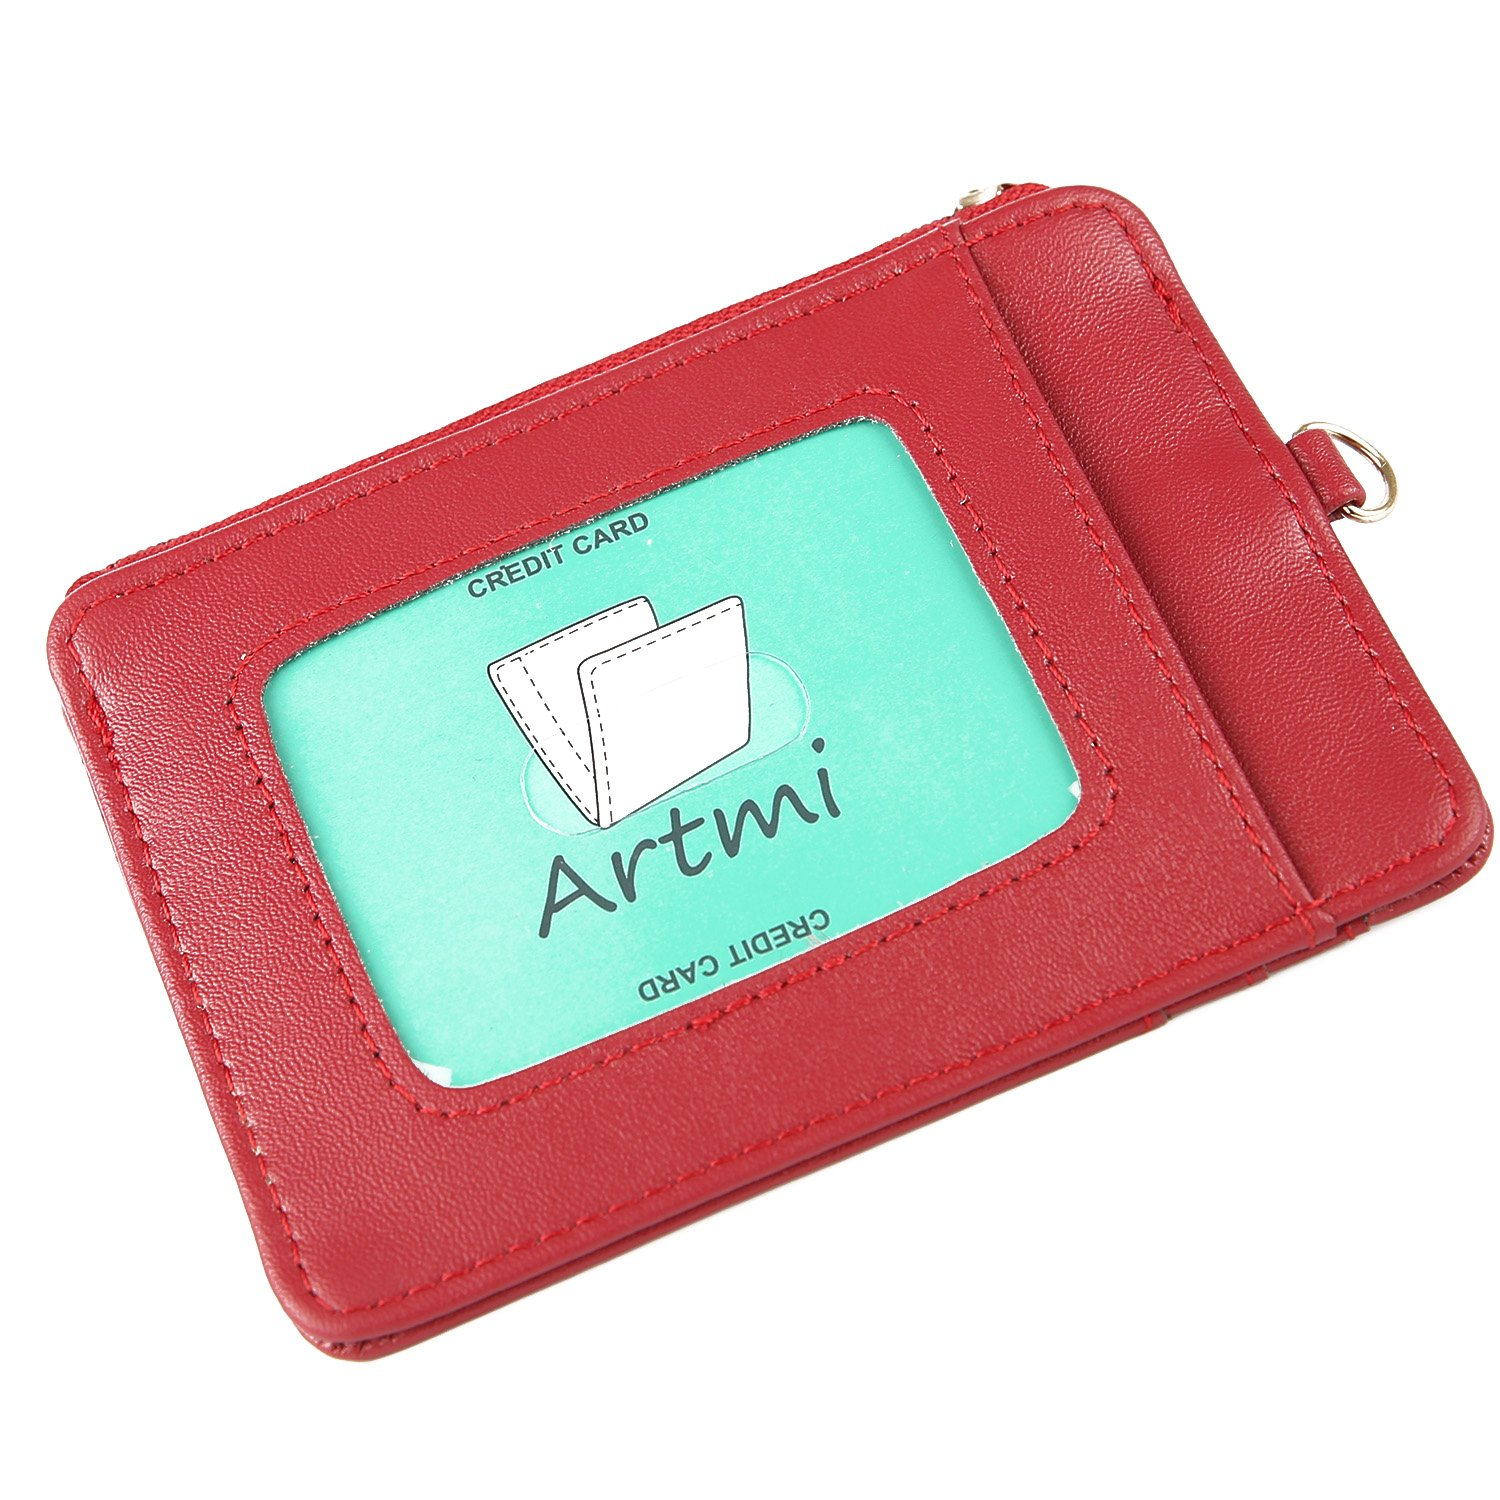 Artmi Womens Card Case Wallet RFID Card Holder Compact Purse AW051-1-2